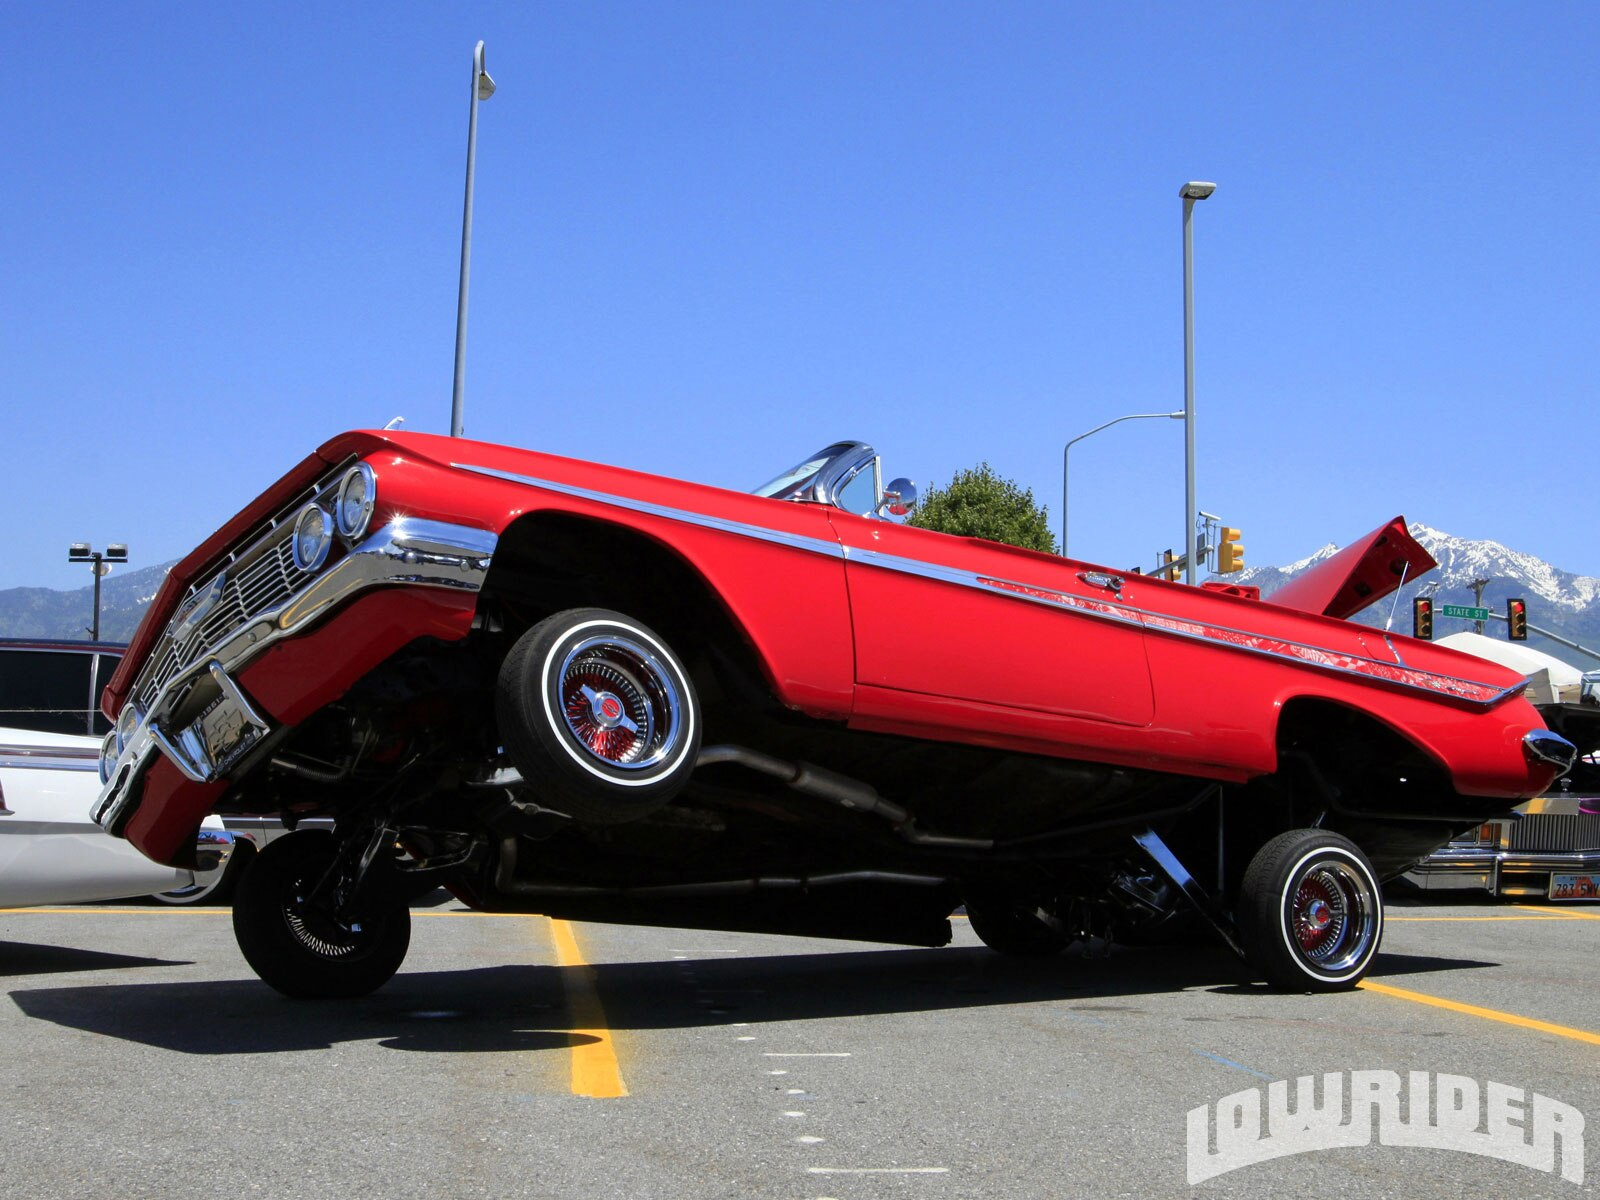 Cars With Hydraulics: Victor's Tires 5th Annual Car Show